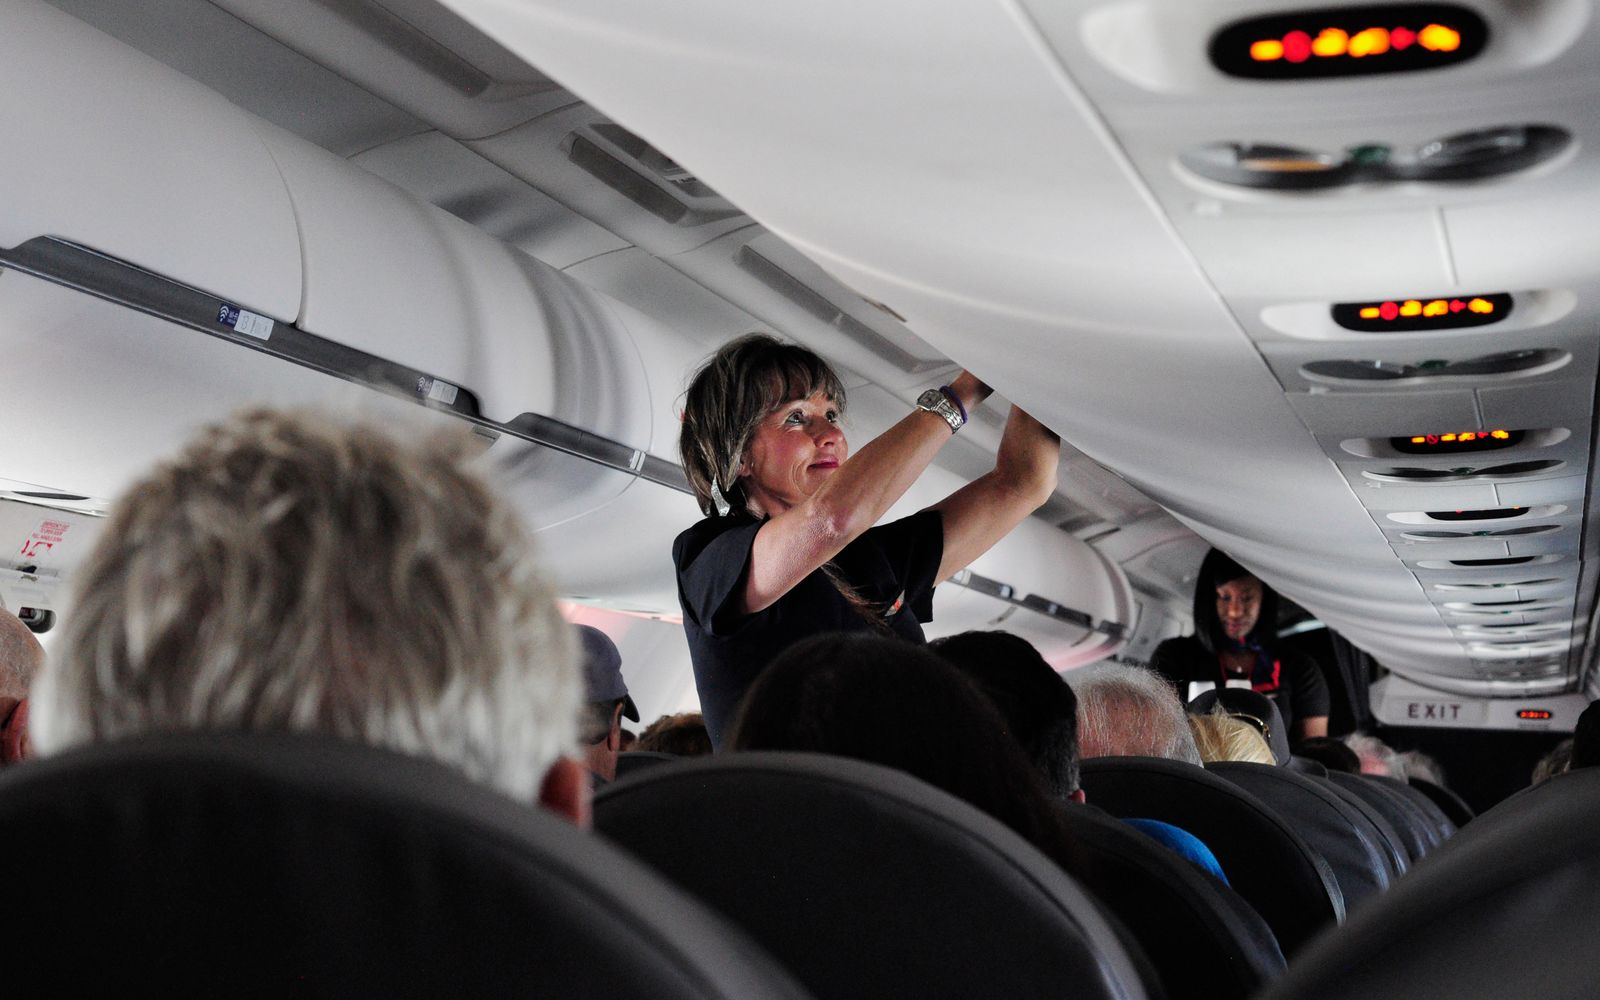 American Airlines Is Changing Its Upsetting Safety Video